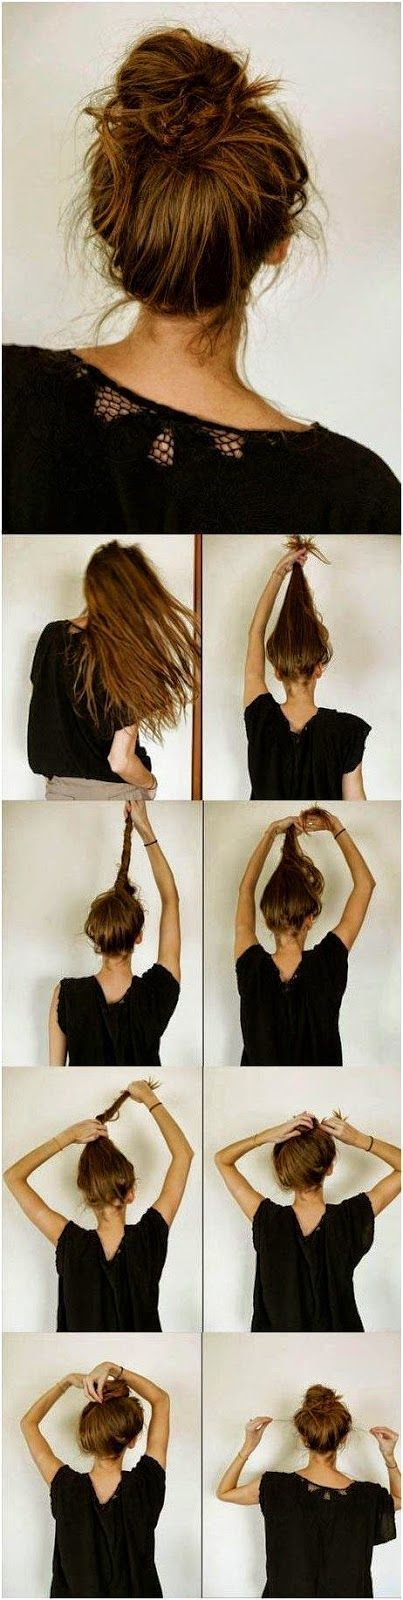 10 Ways To Make Cute Everyday Hairstyles Long Hair Tutorials Popular Haircuts Bun Hairstyles For Long Hair Cute Everyday Hairstyles Long Hair Tutorial